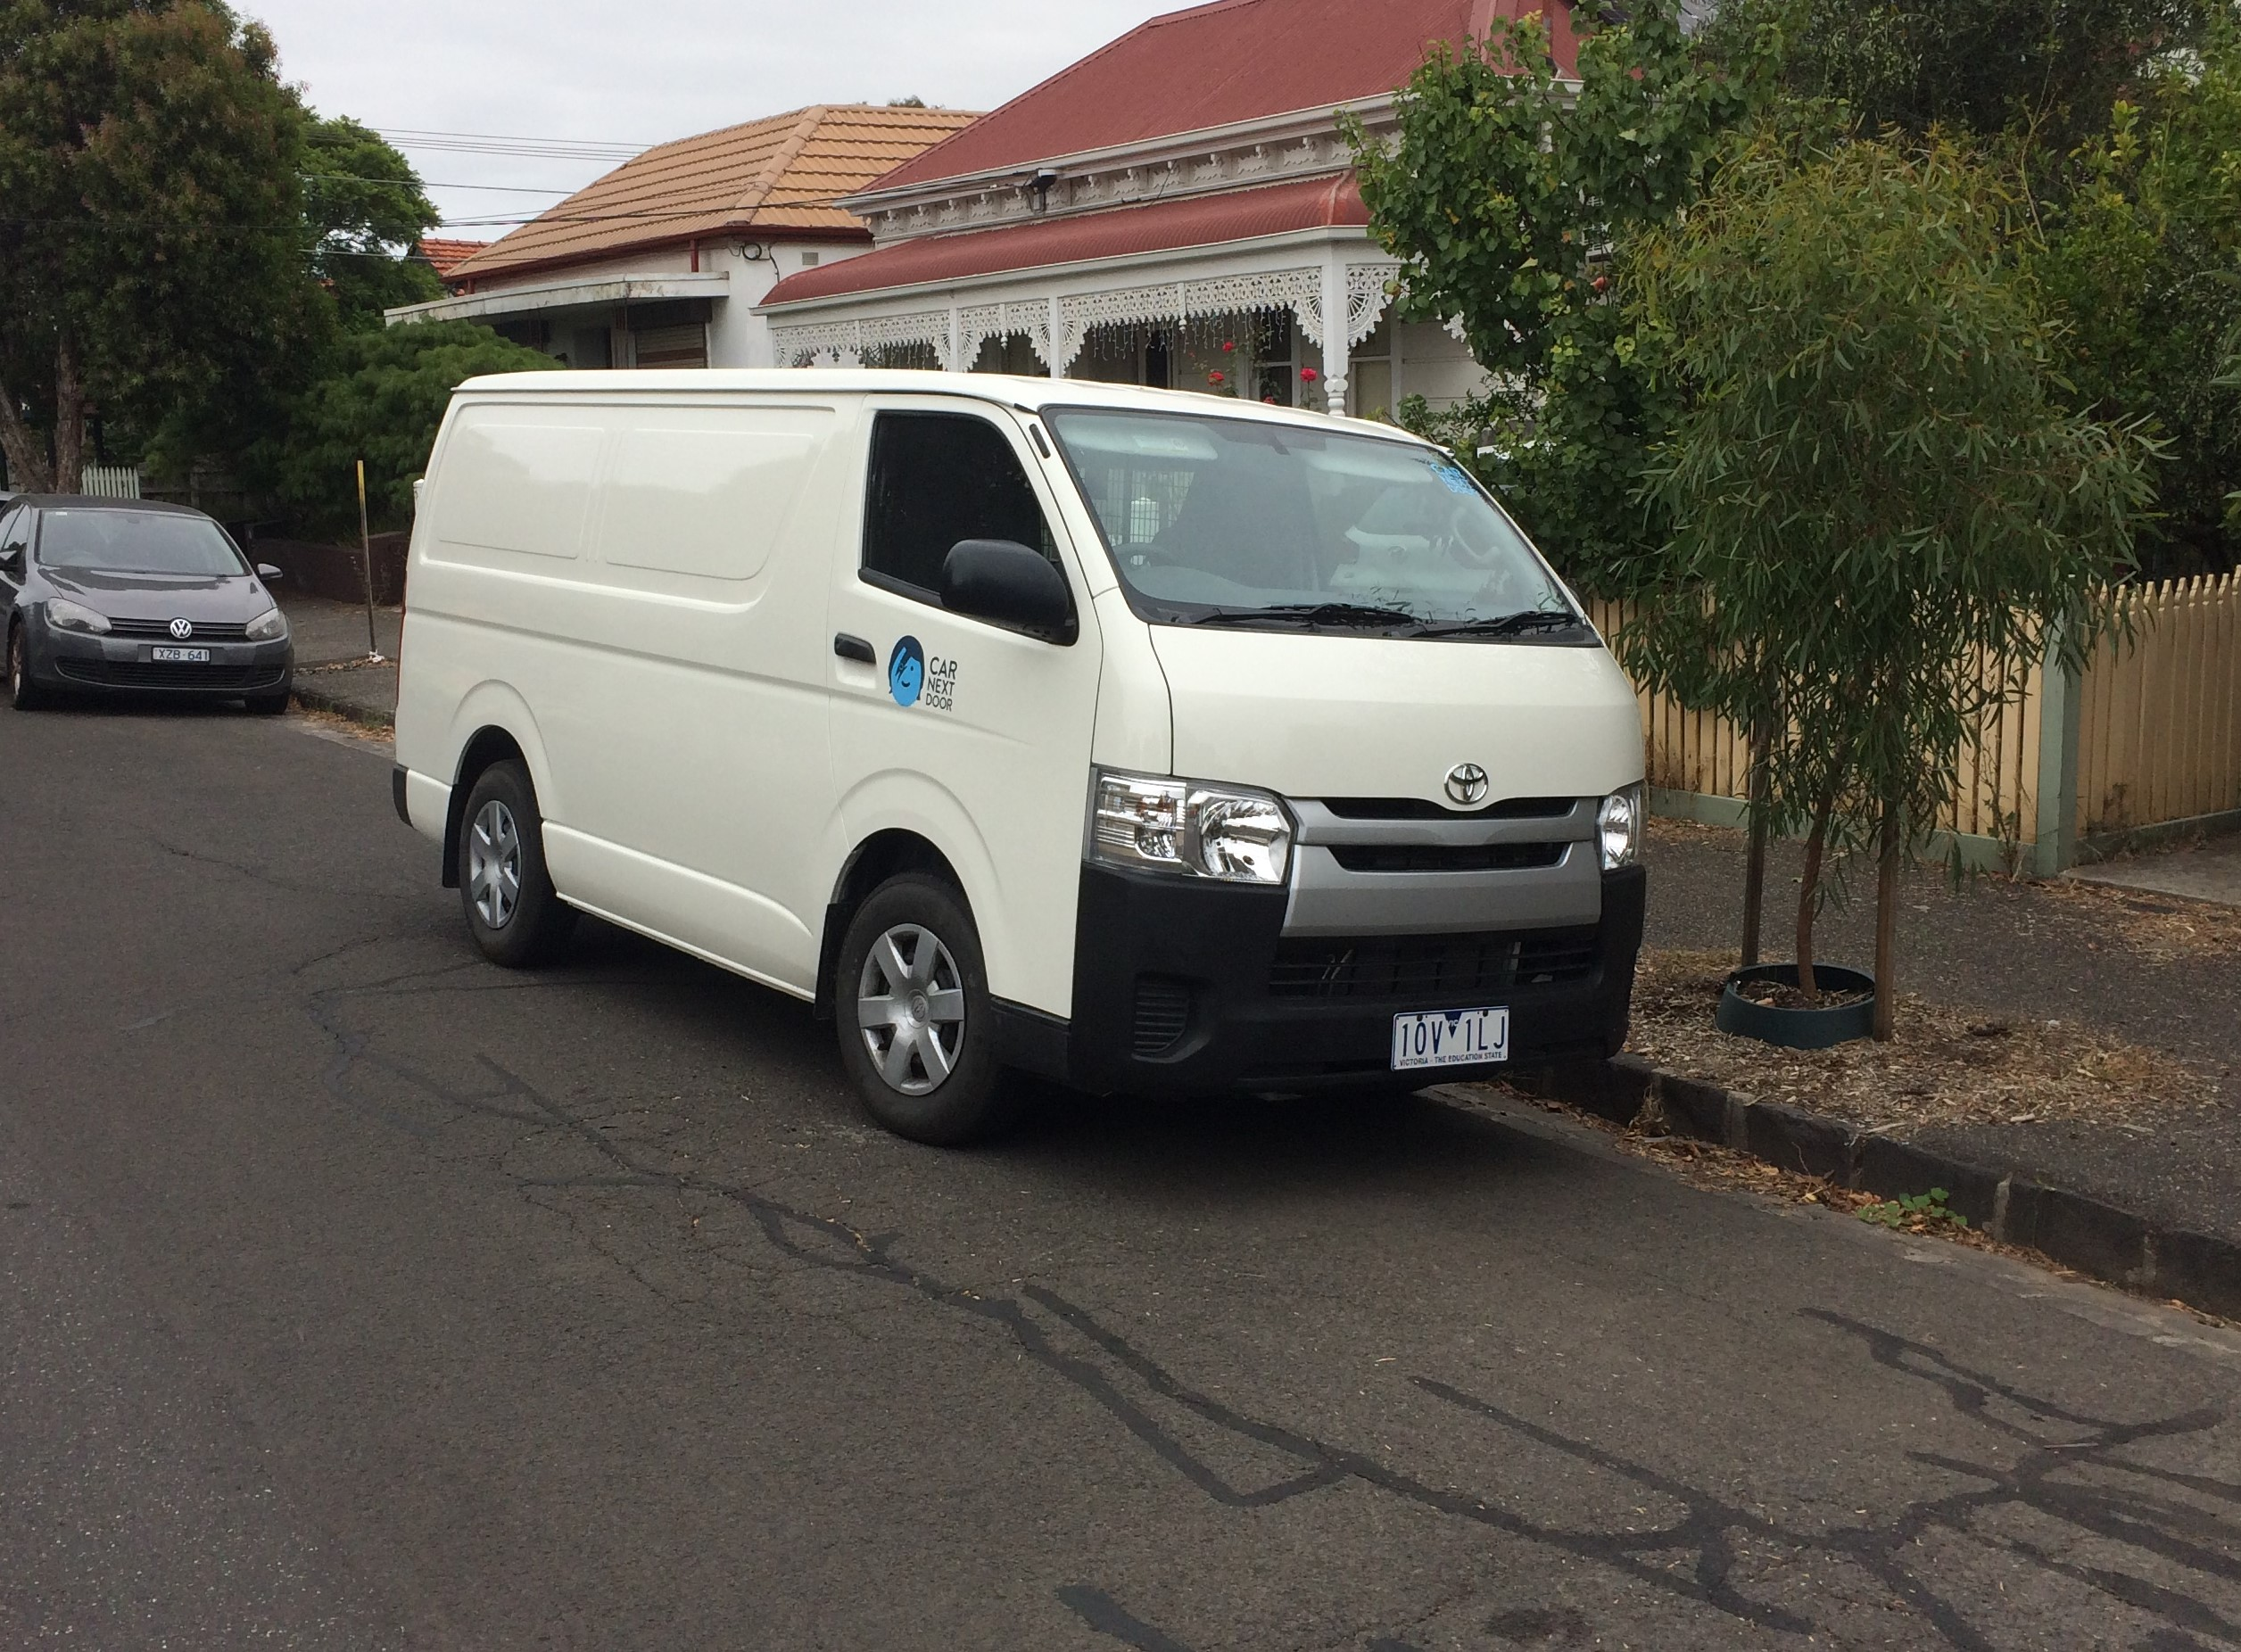 Picture of Rodwan's 2017 Toyota Hiace